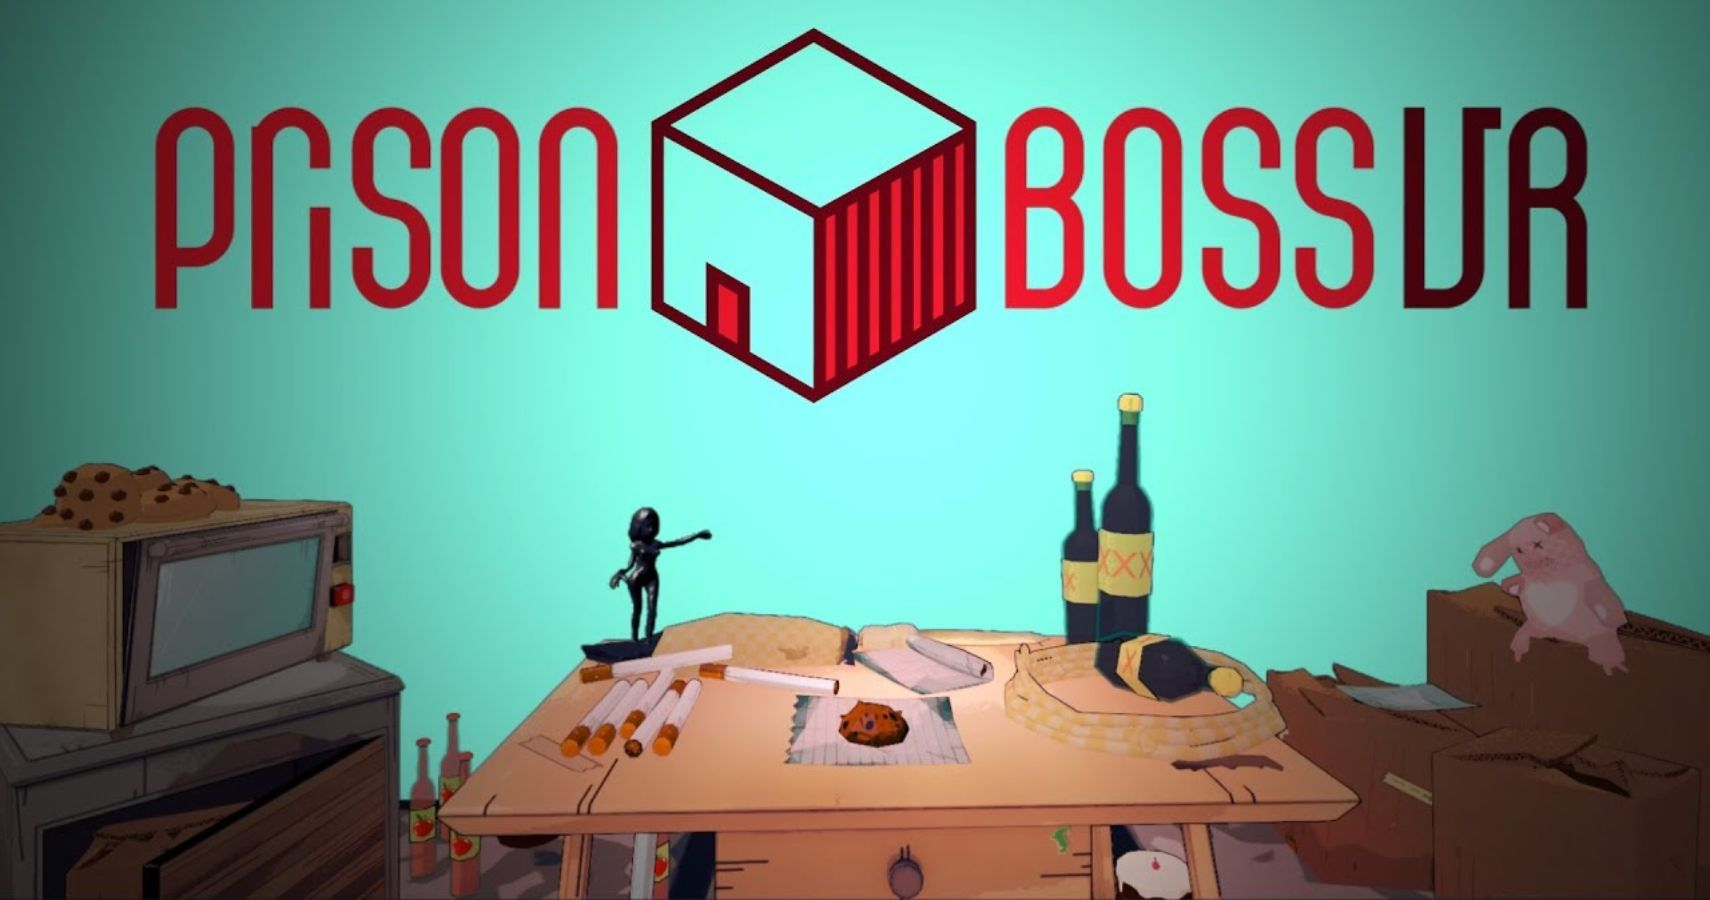 The Hilarious Prison Boss VR Is Now Available On Oculus Quest